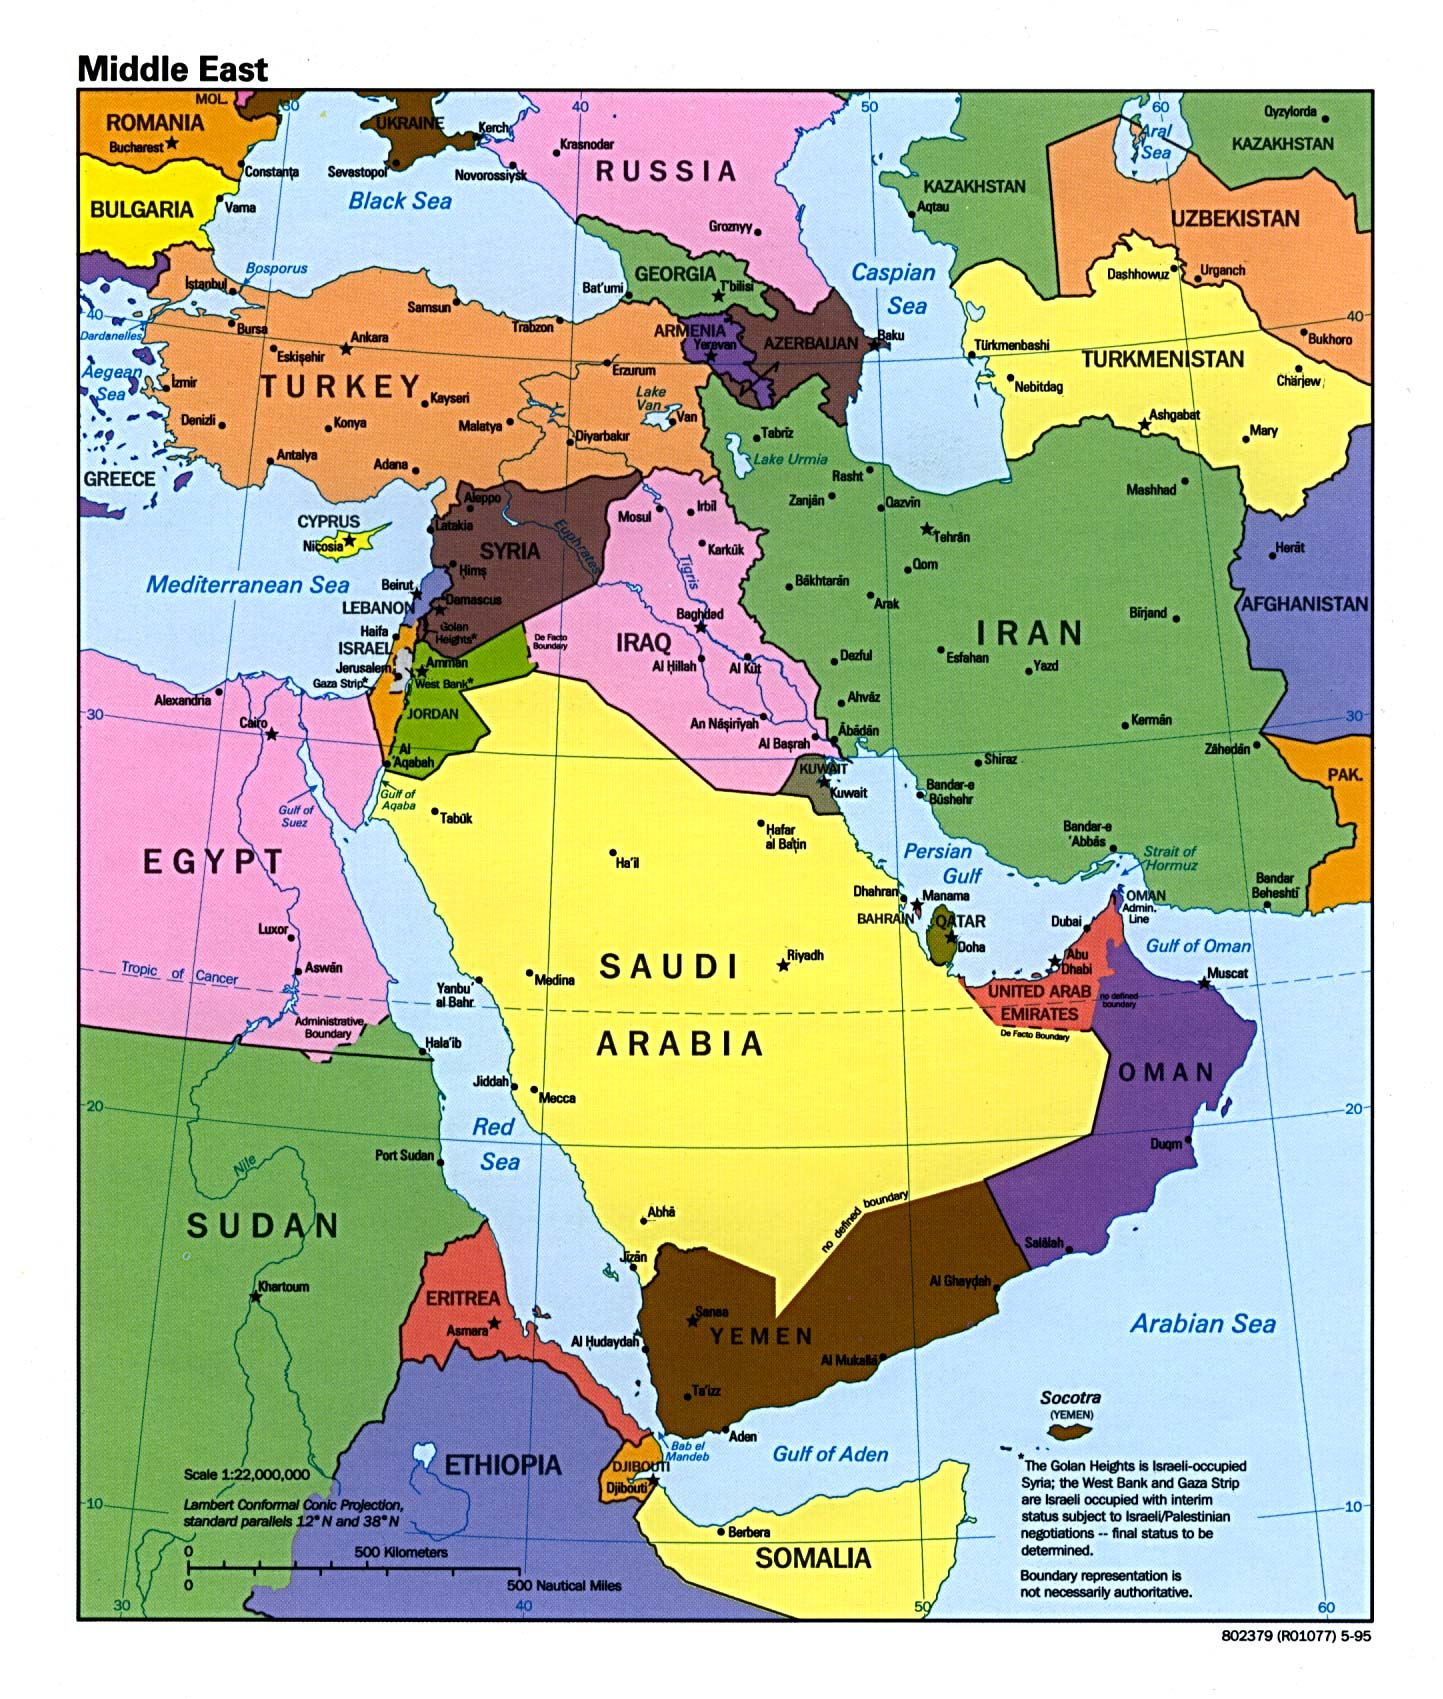 Middle East Political Map 1995